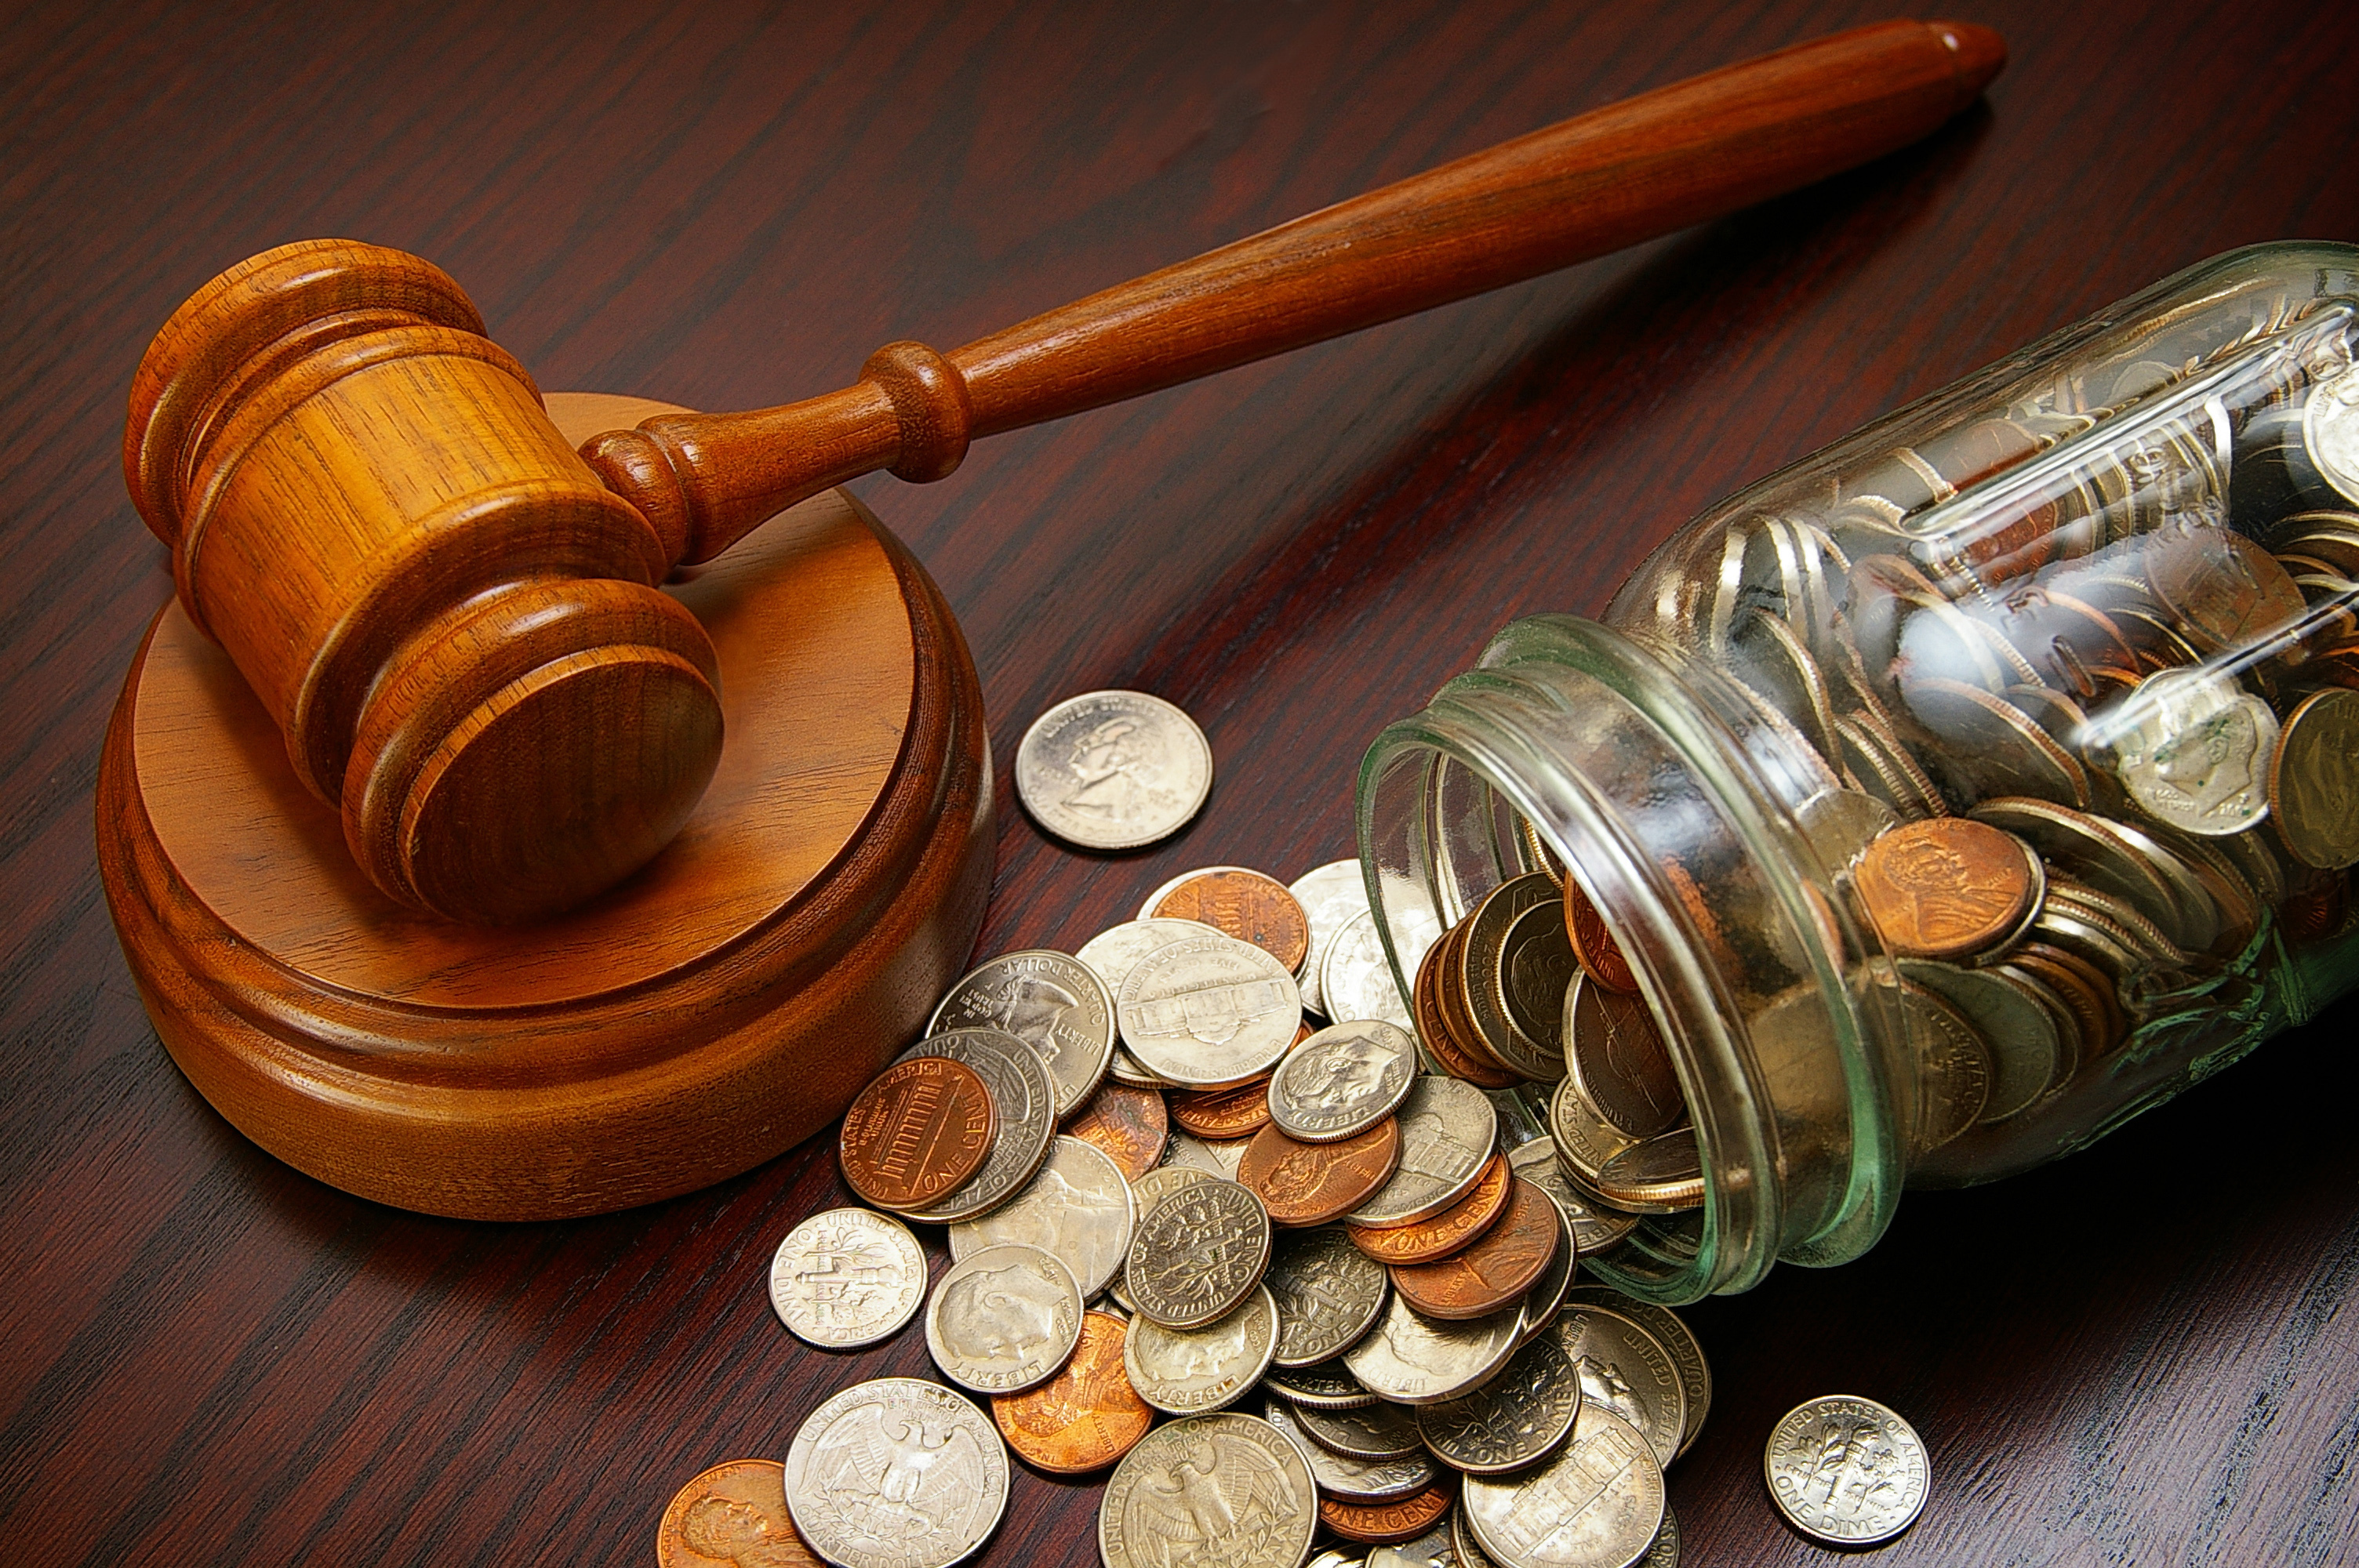 A photograph of a dark wooden gavel resting on a table. Next to it, a mason jar of American coins has tipped over and spilled onto the dark mahogany table. The coins include dimes, pennies, nickels and quarters.